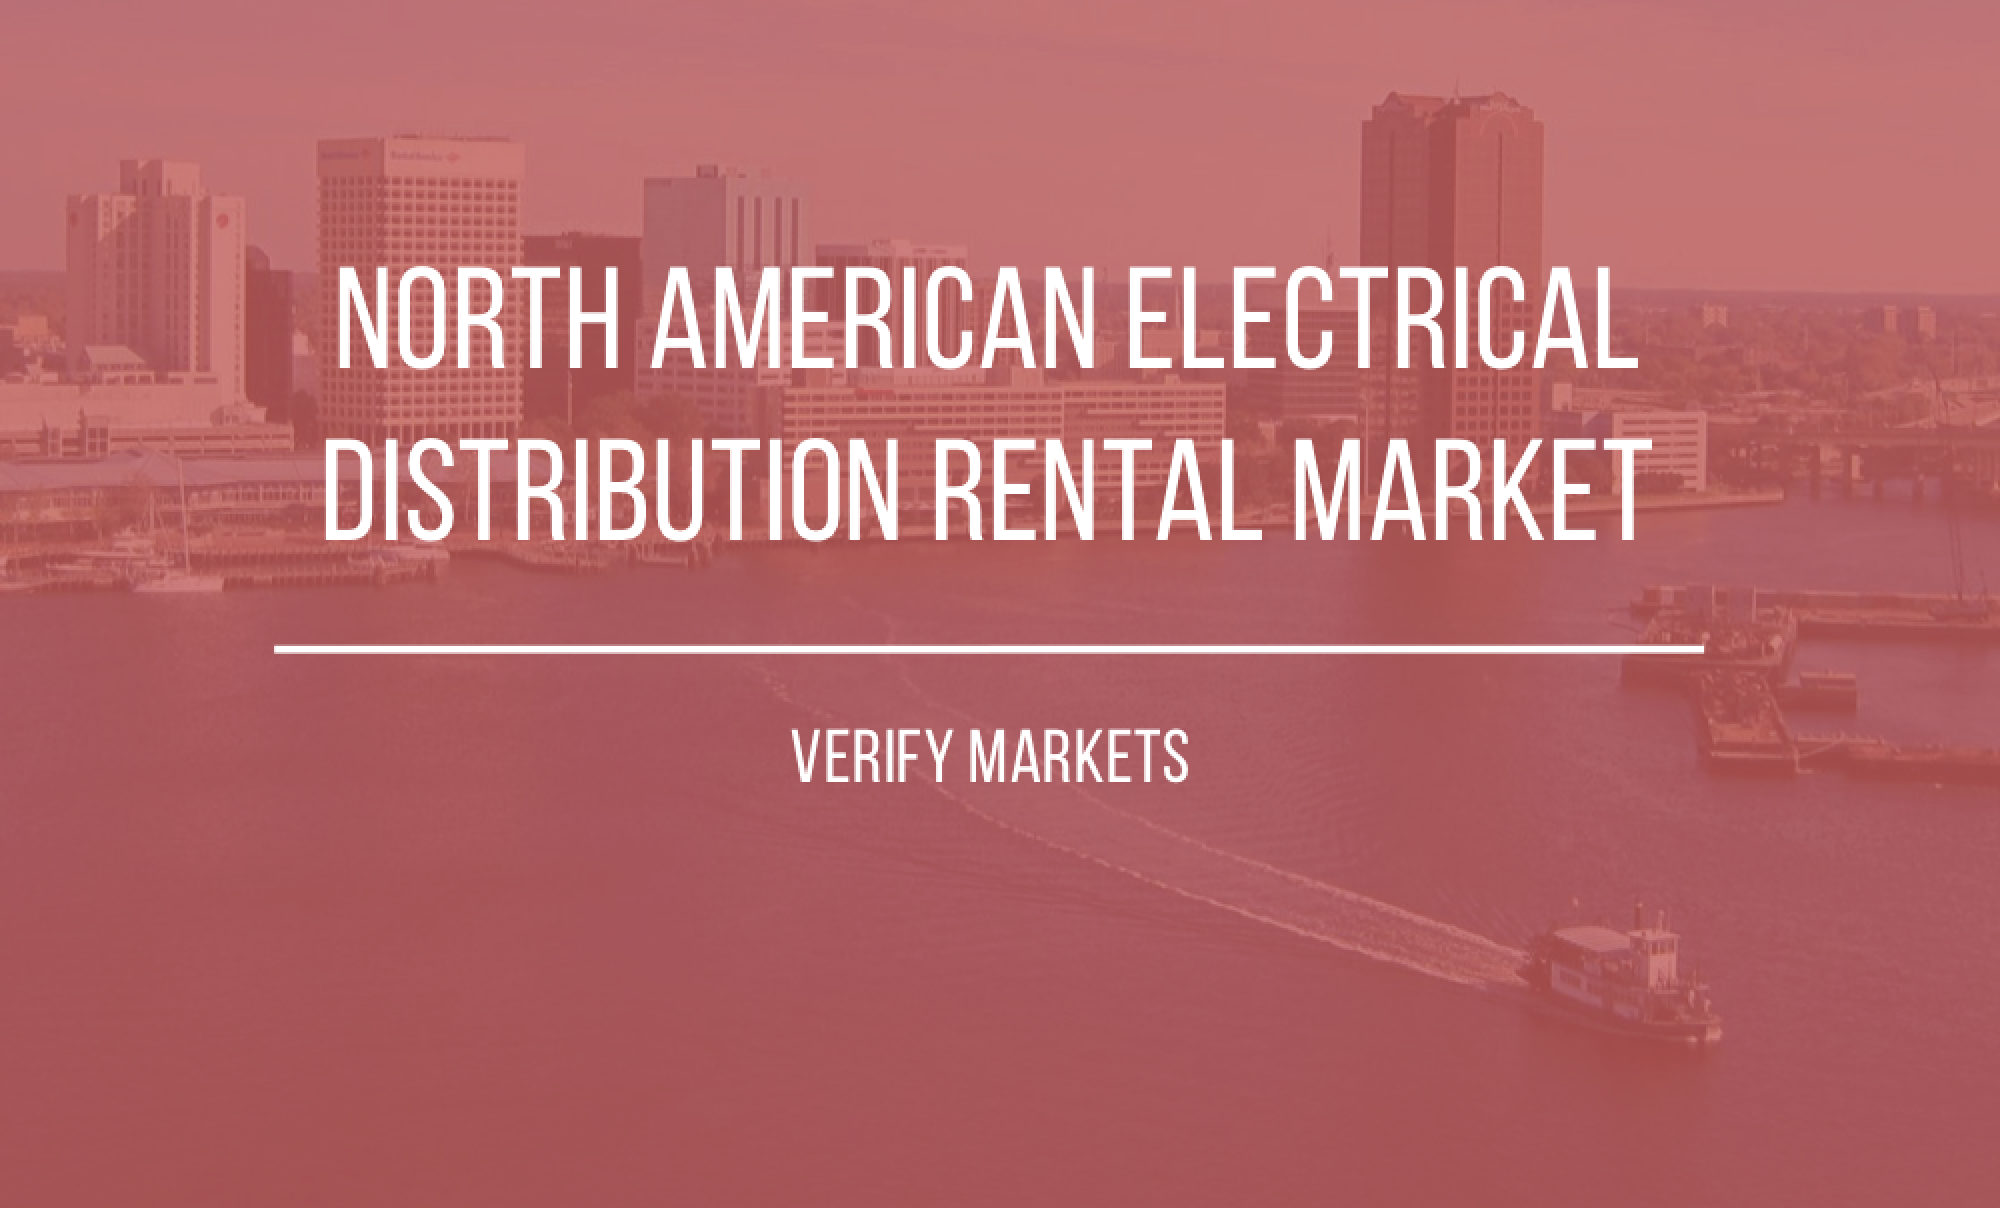 2017 NORTH AMERICAN ELECTRICAL DISTRIBUTION EQUIPMENT RENTAL MARKET